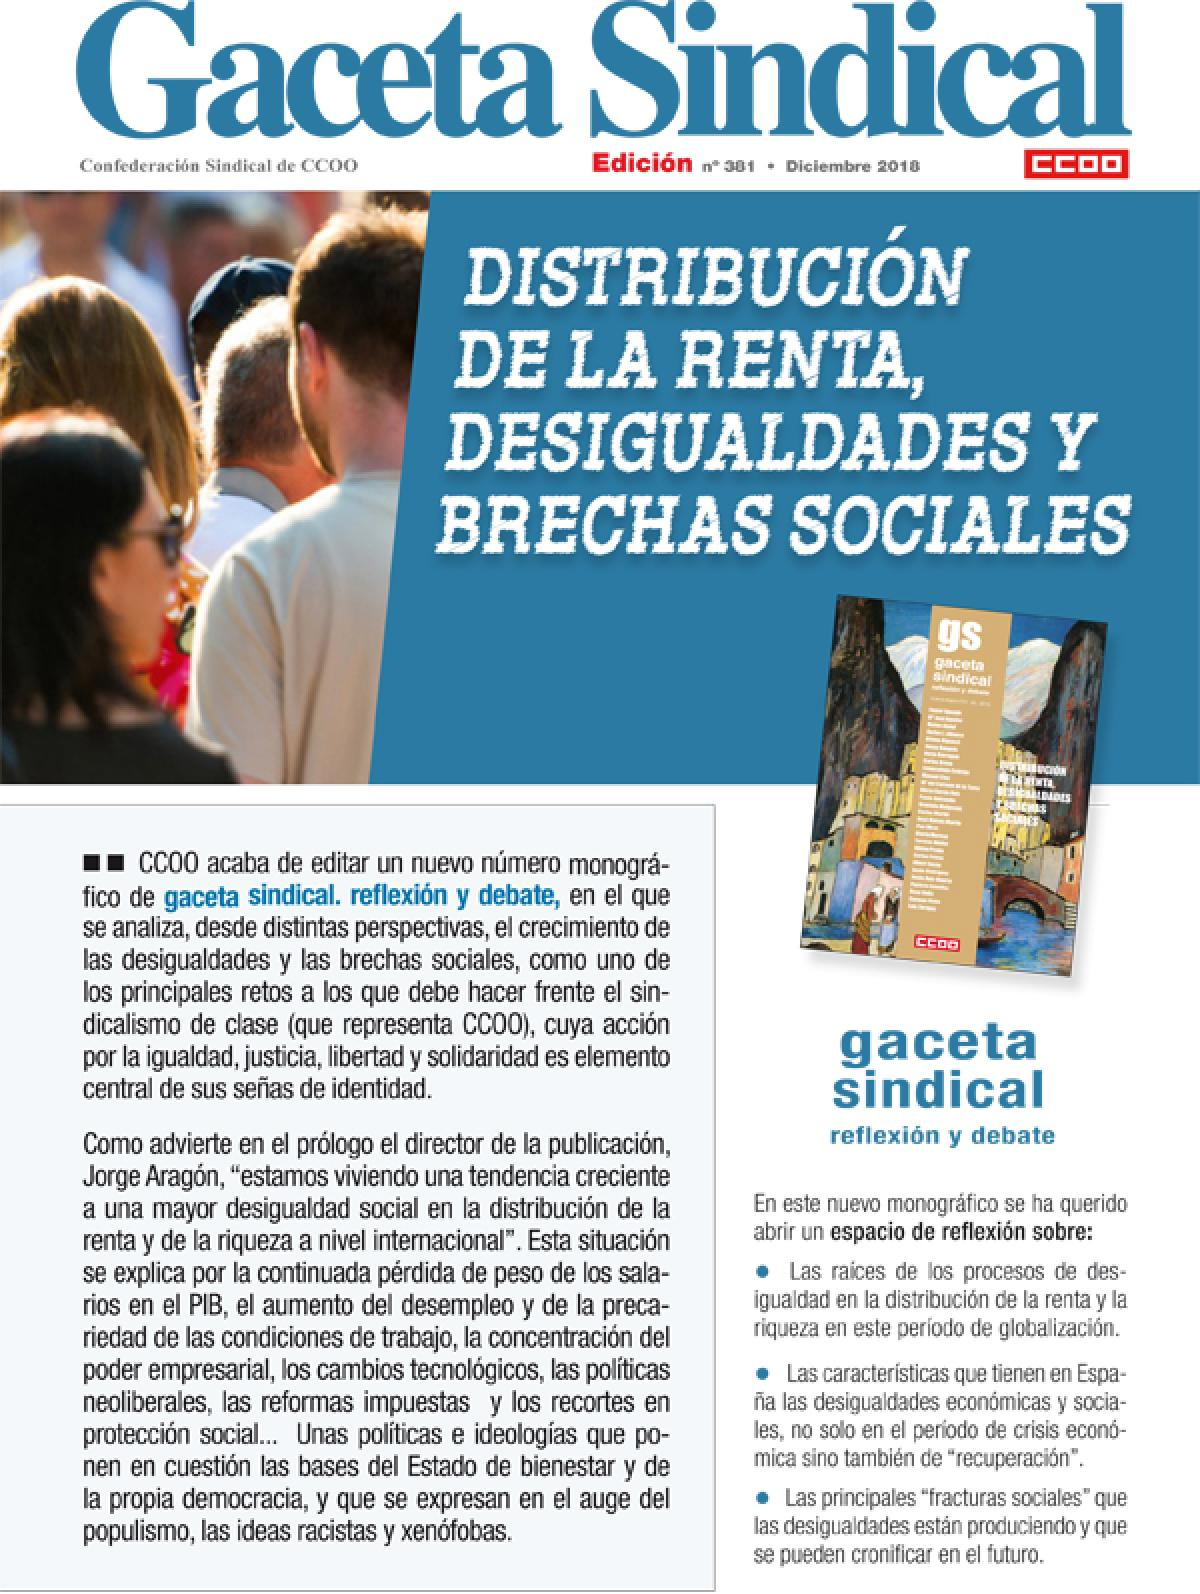 Gaceta Sindical Digital nº 381